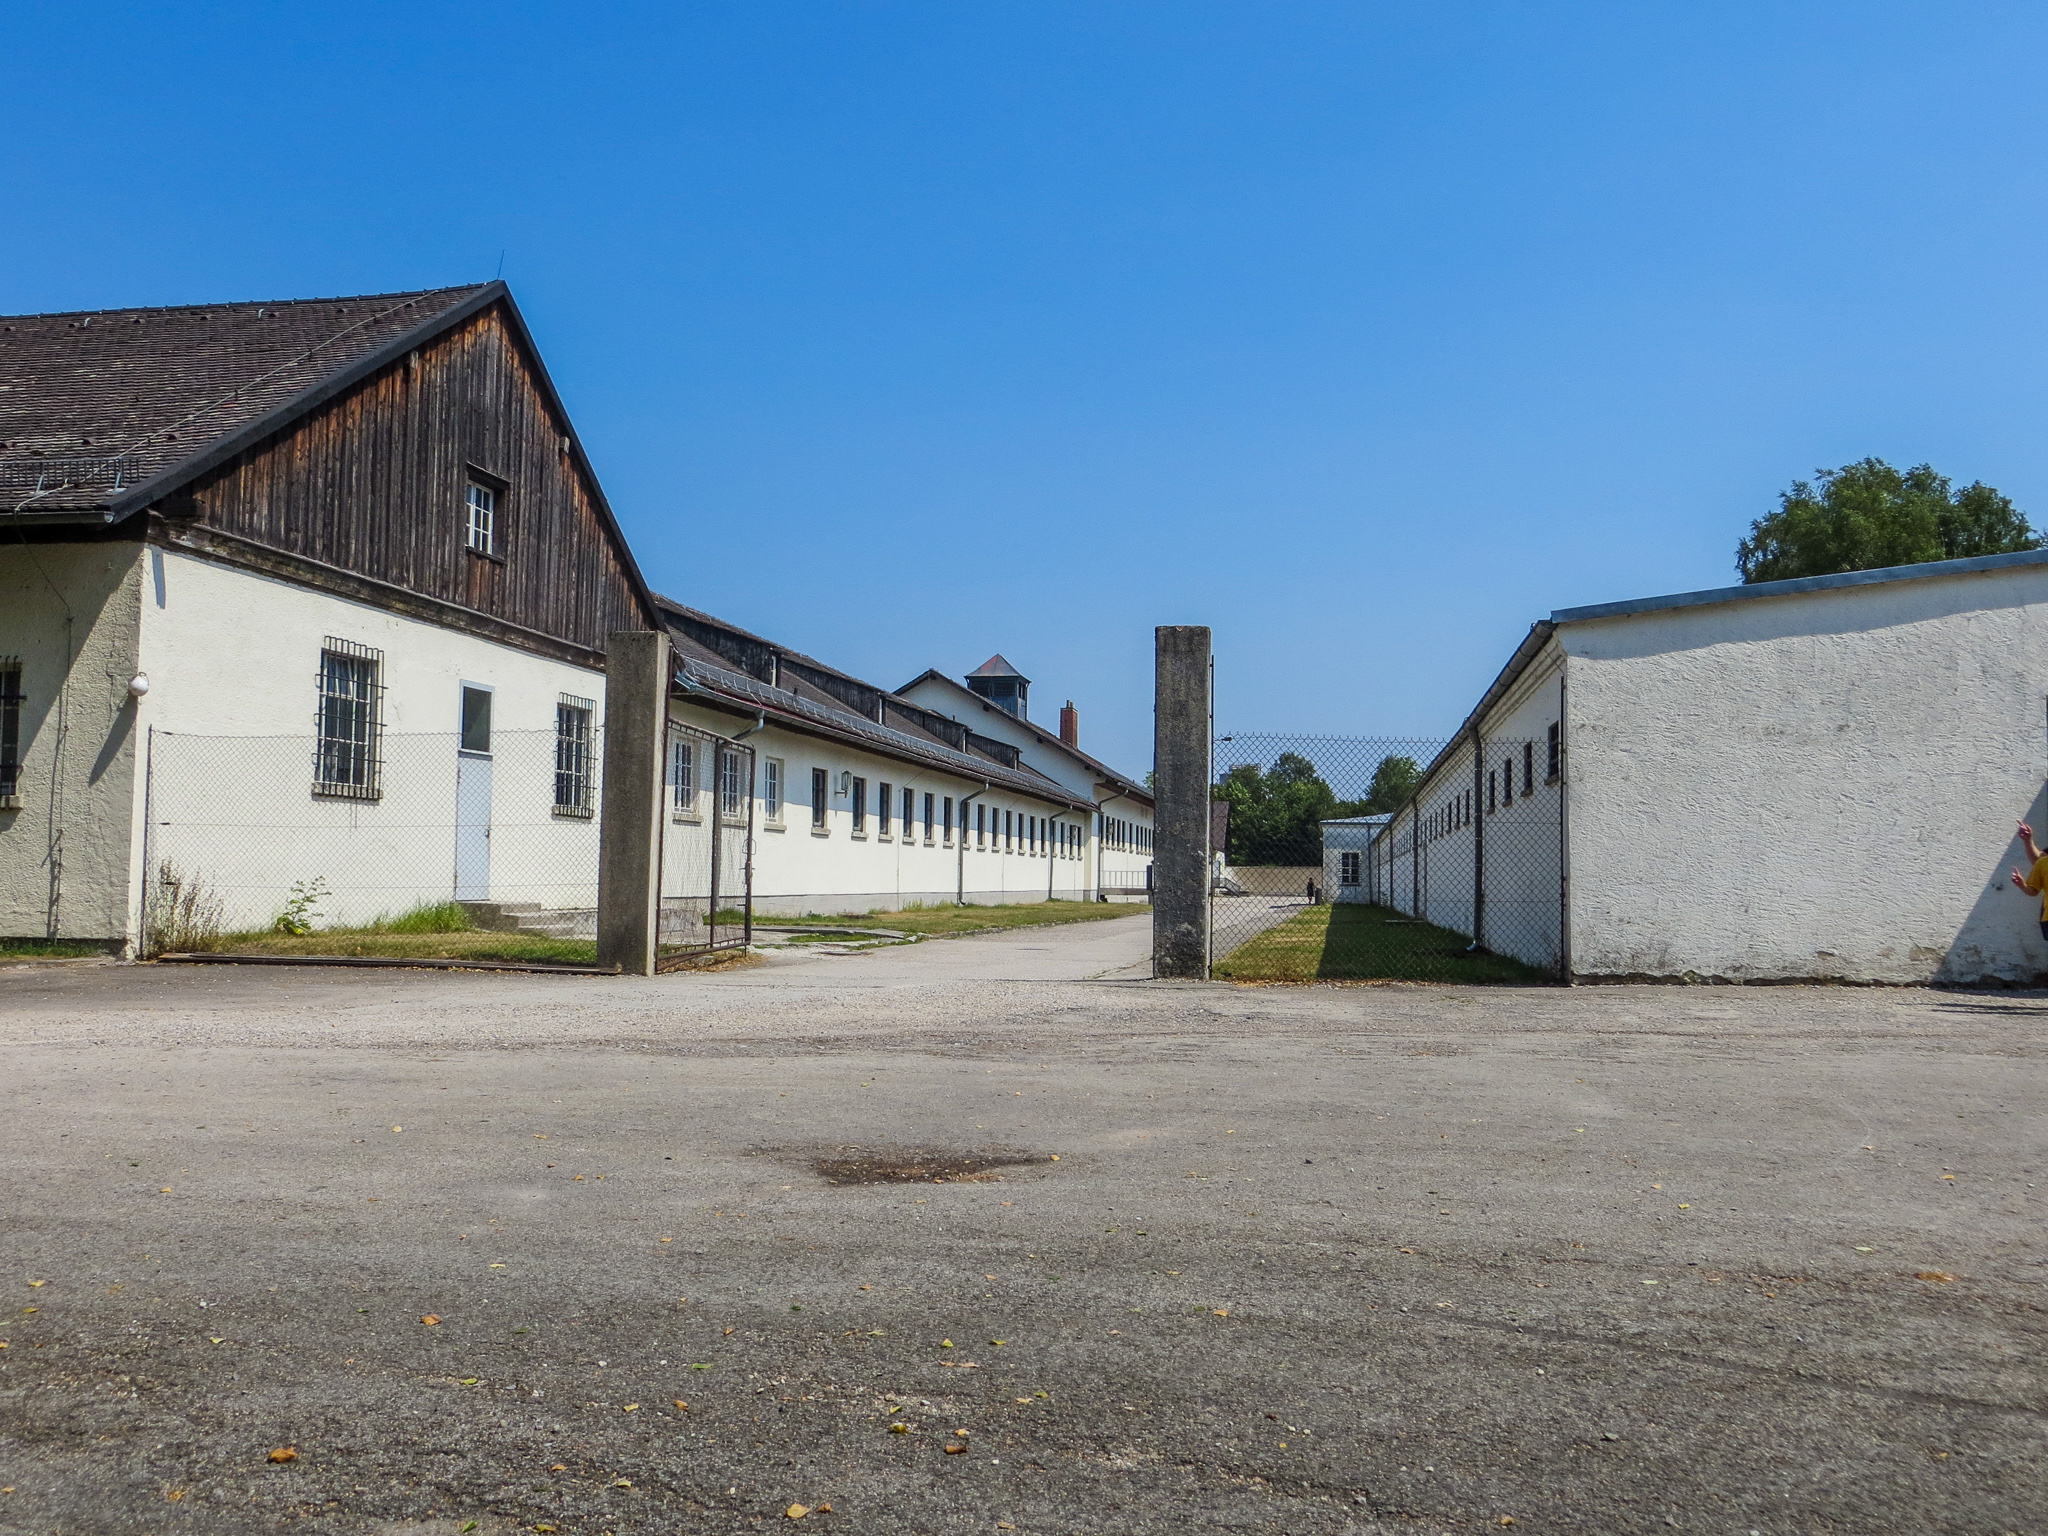 a trip to dachau from munich will leave you stunned